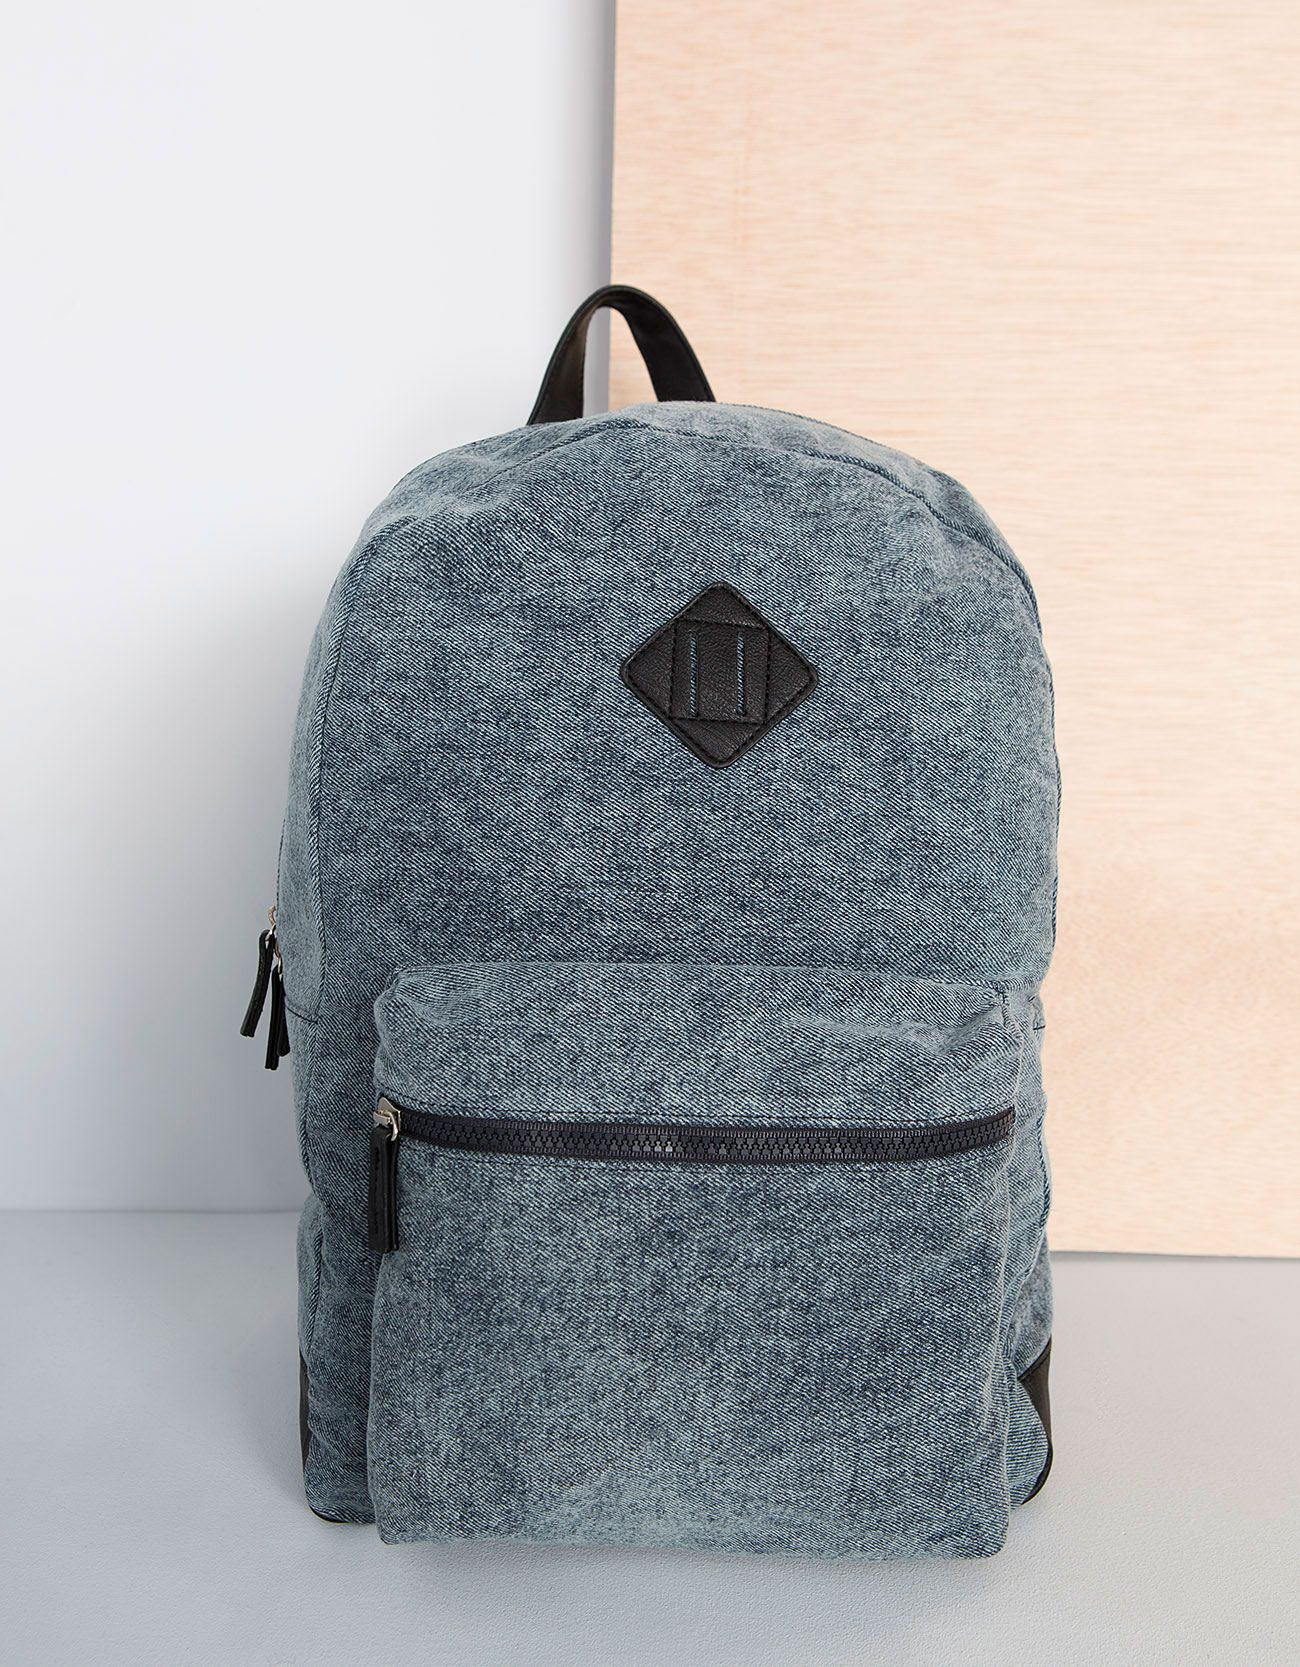 a870bec2d Cute Backpacks, Backpack Purse, My Bags, Purses And Bags, Crazy Things,